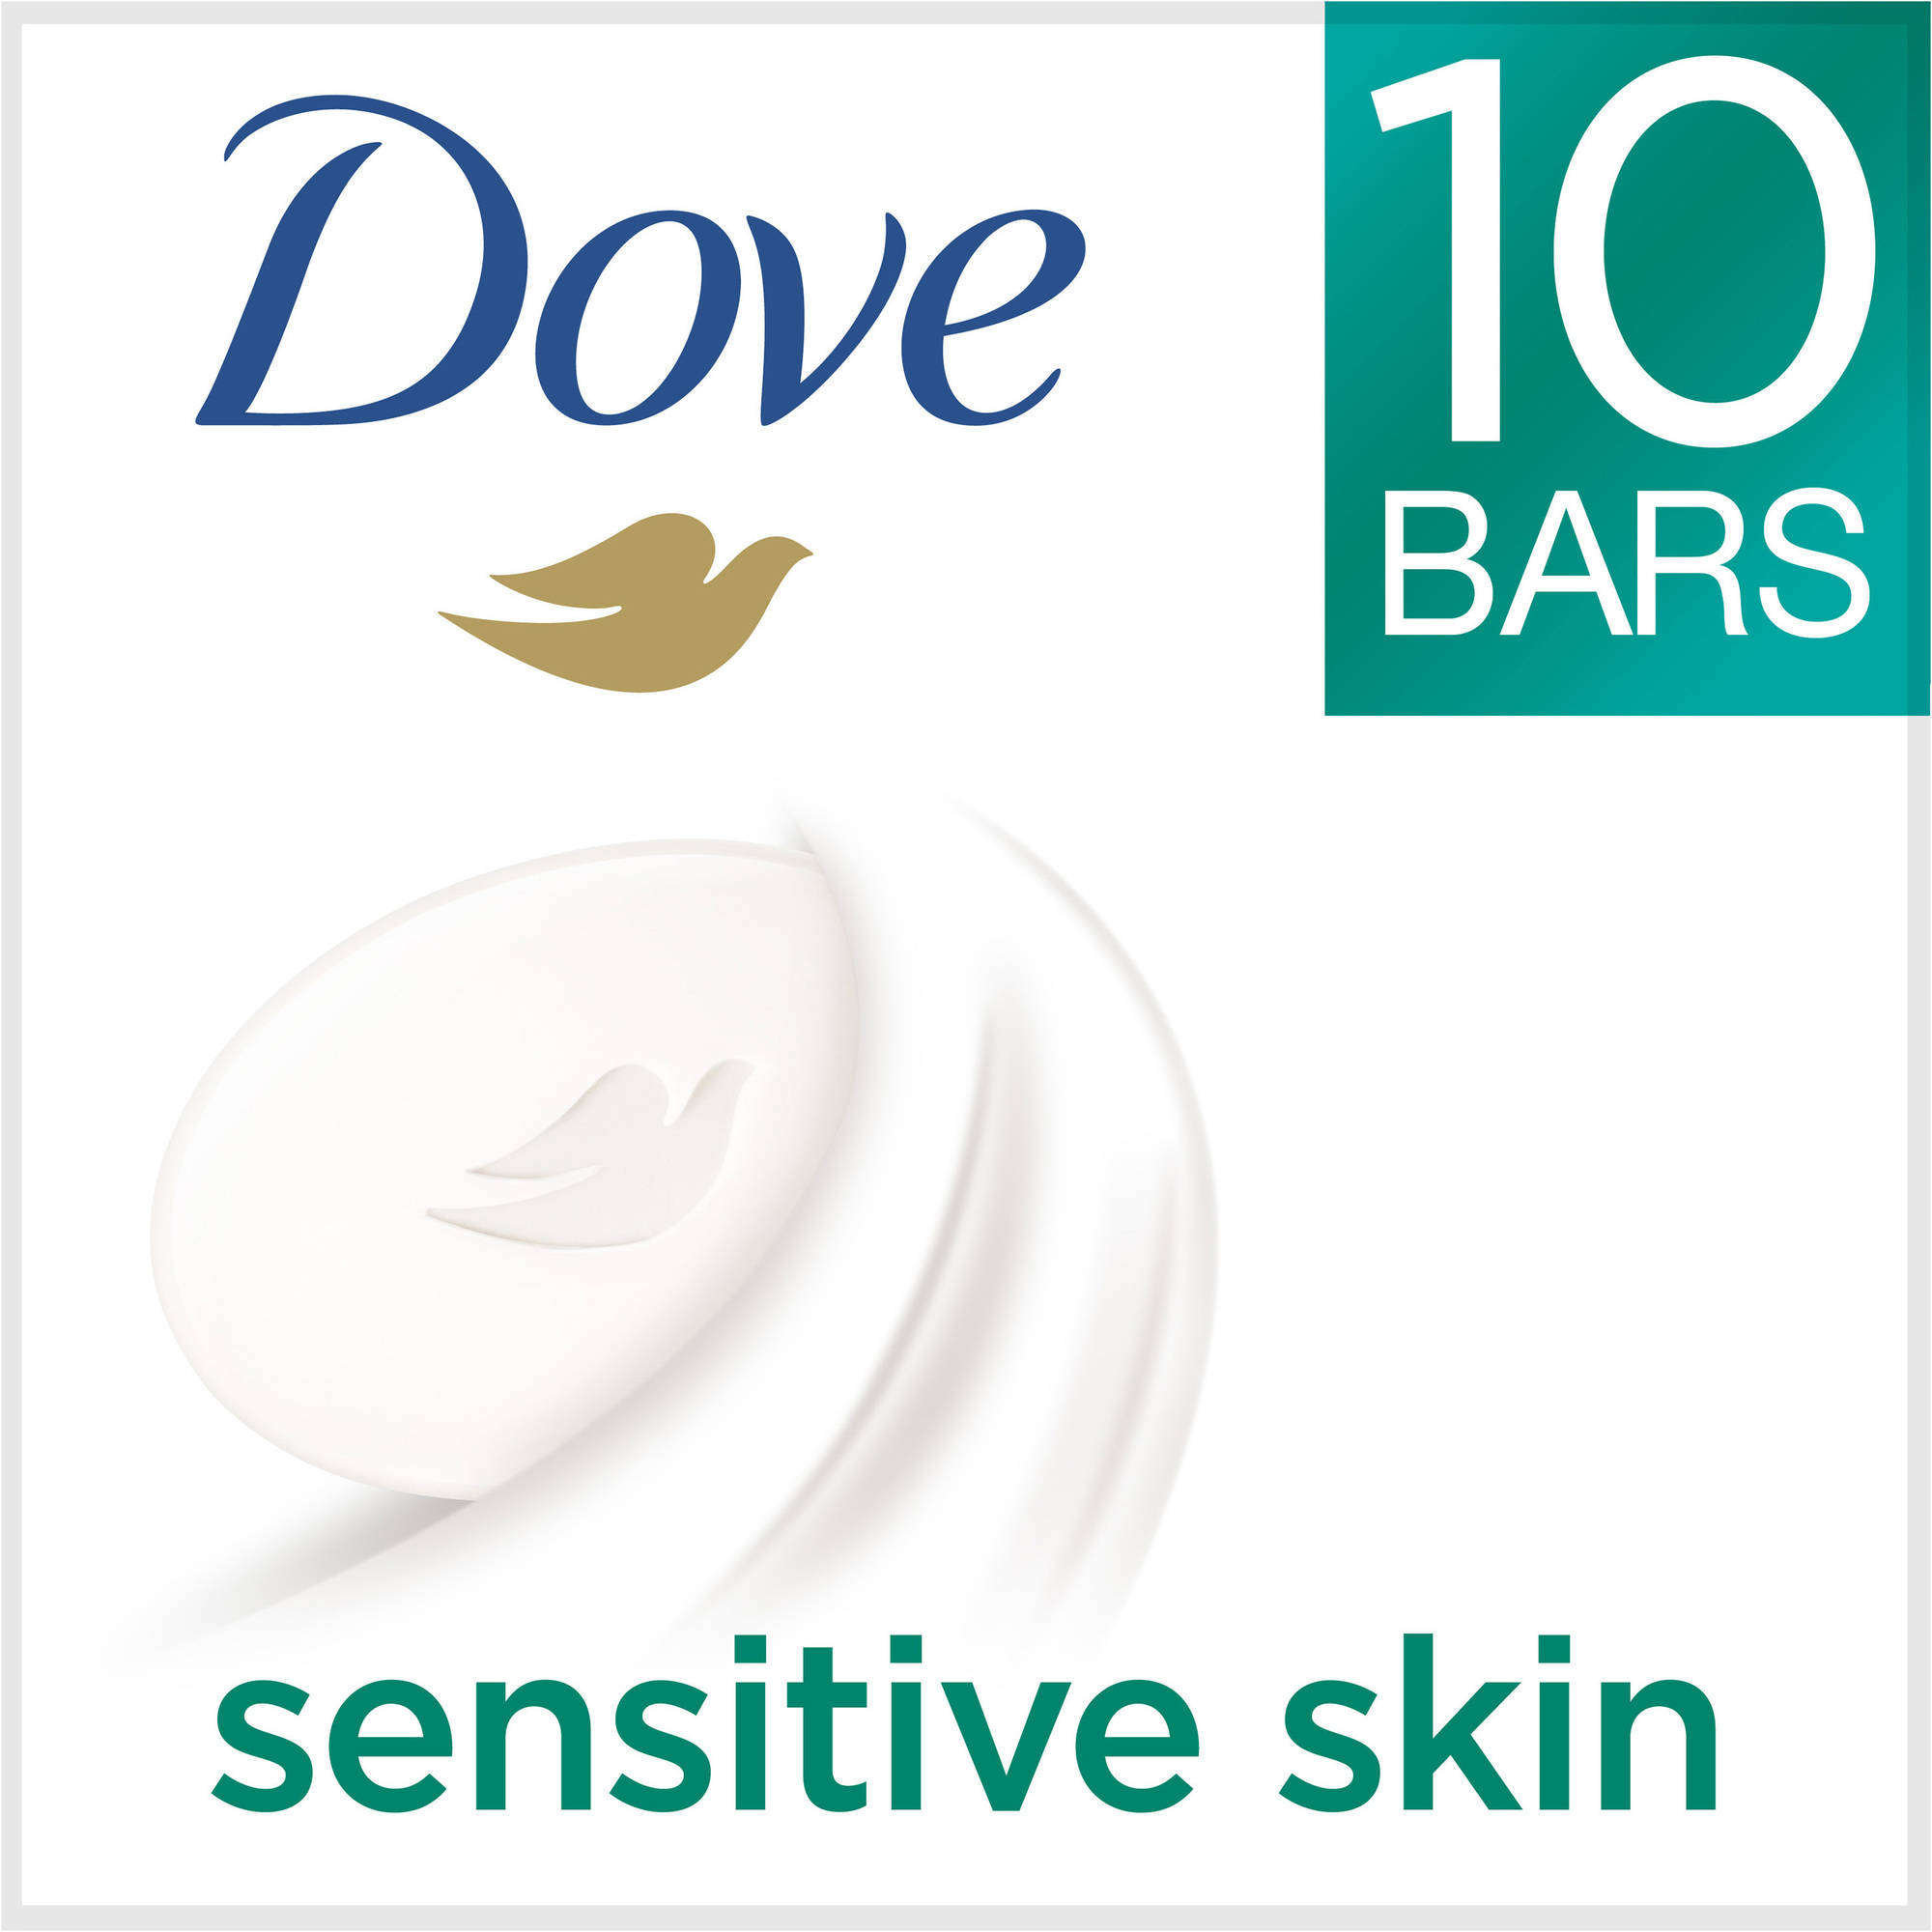 Dove Sensitive Skin Beauty Bar, 4 oz, 10 Bar